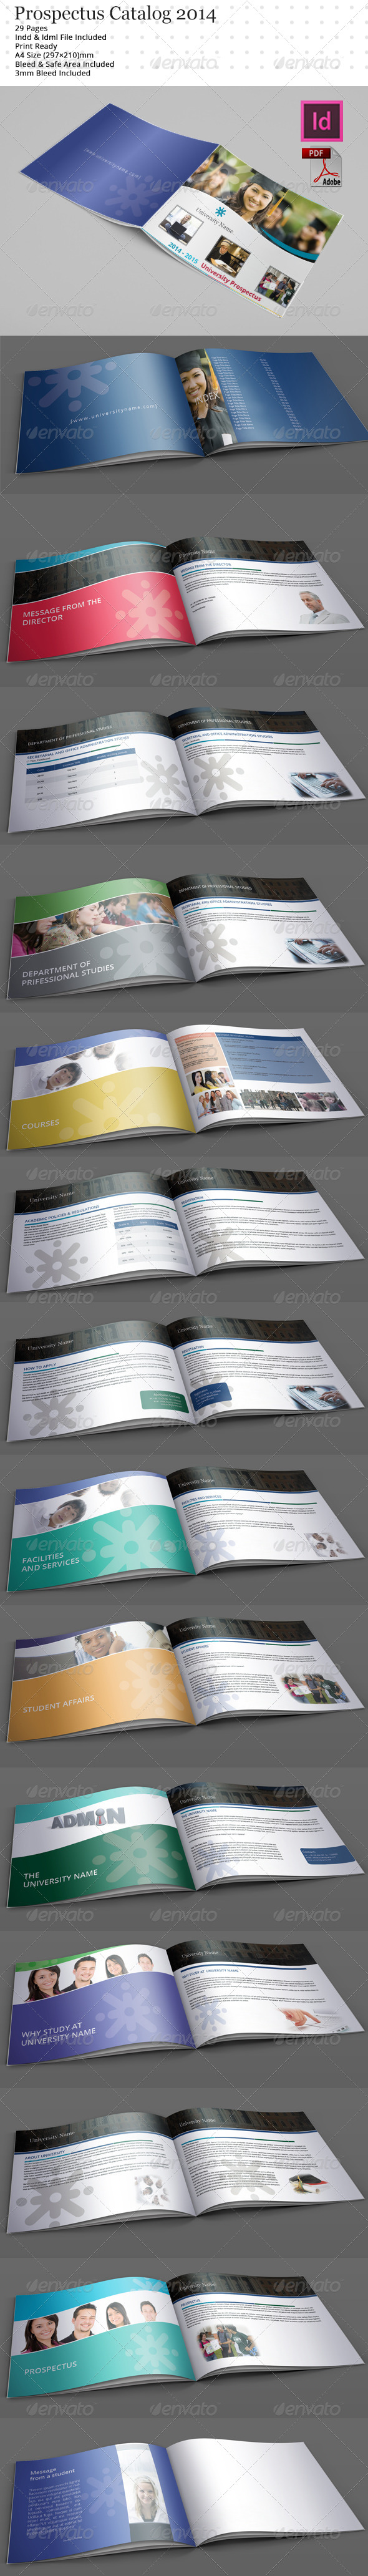 GraphicRiver Prospectus Catalog Templates 2014 6210854